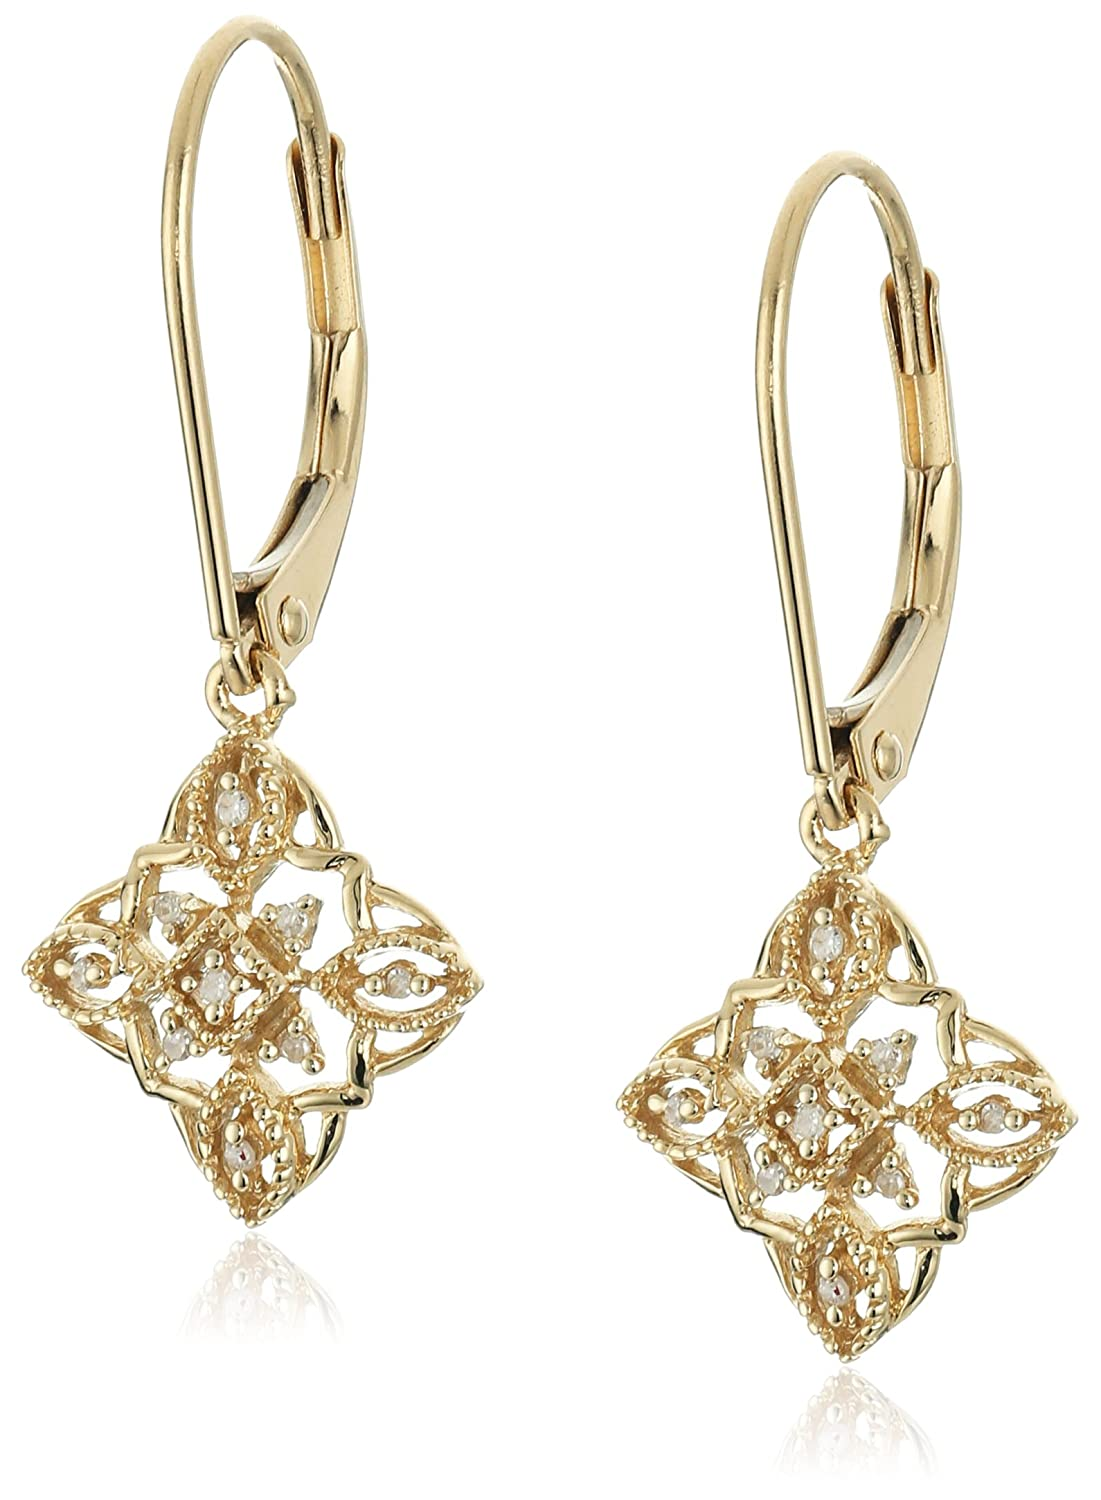 10k White, Yellow or Rose Gold Diamond Lever Back Floral Design Earrings (1/20 cttw, I-J Color, I2-I3 Clarity)